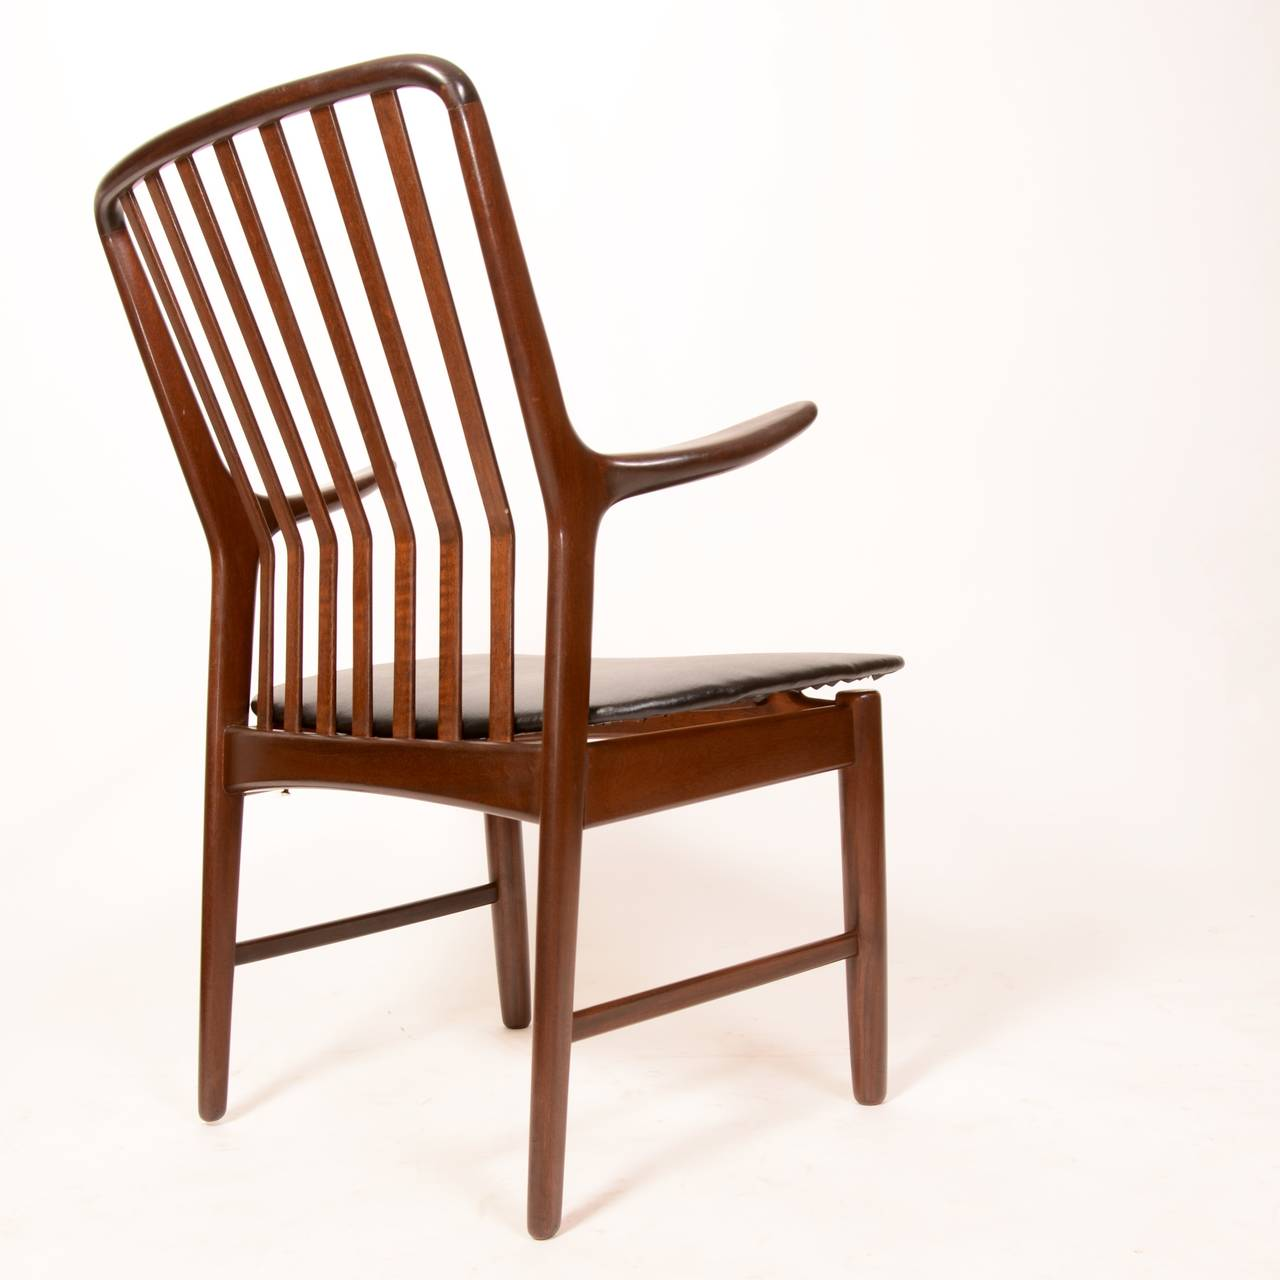 Danish Arm Chairs by Svend A. Madsen for Moreddi, Set of 2 9